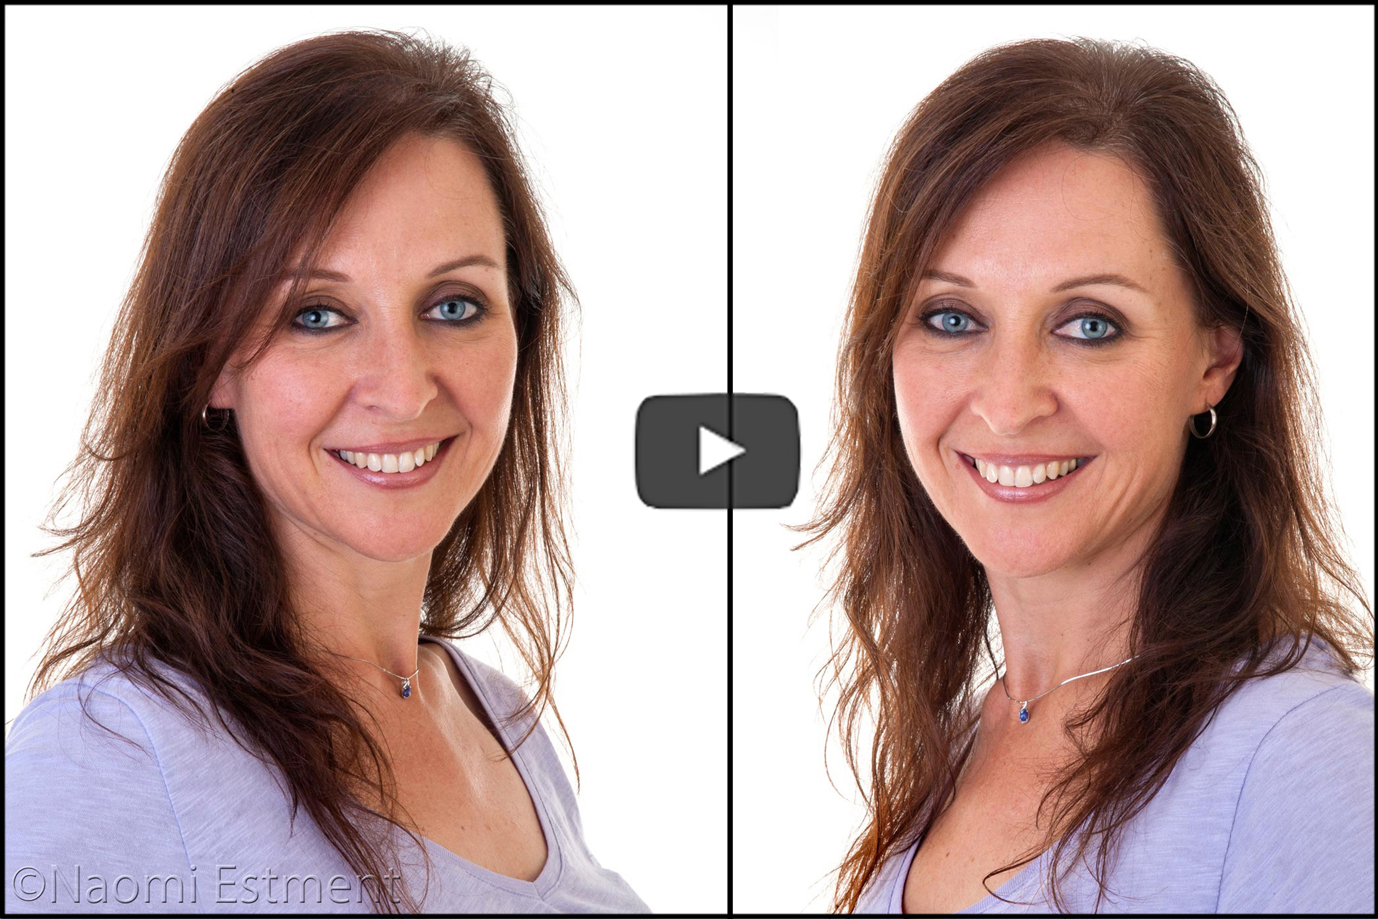 How to Pose on Camera – Video 1